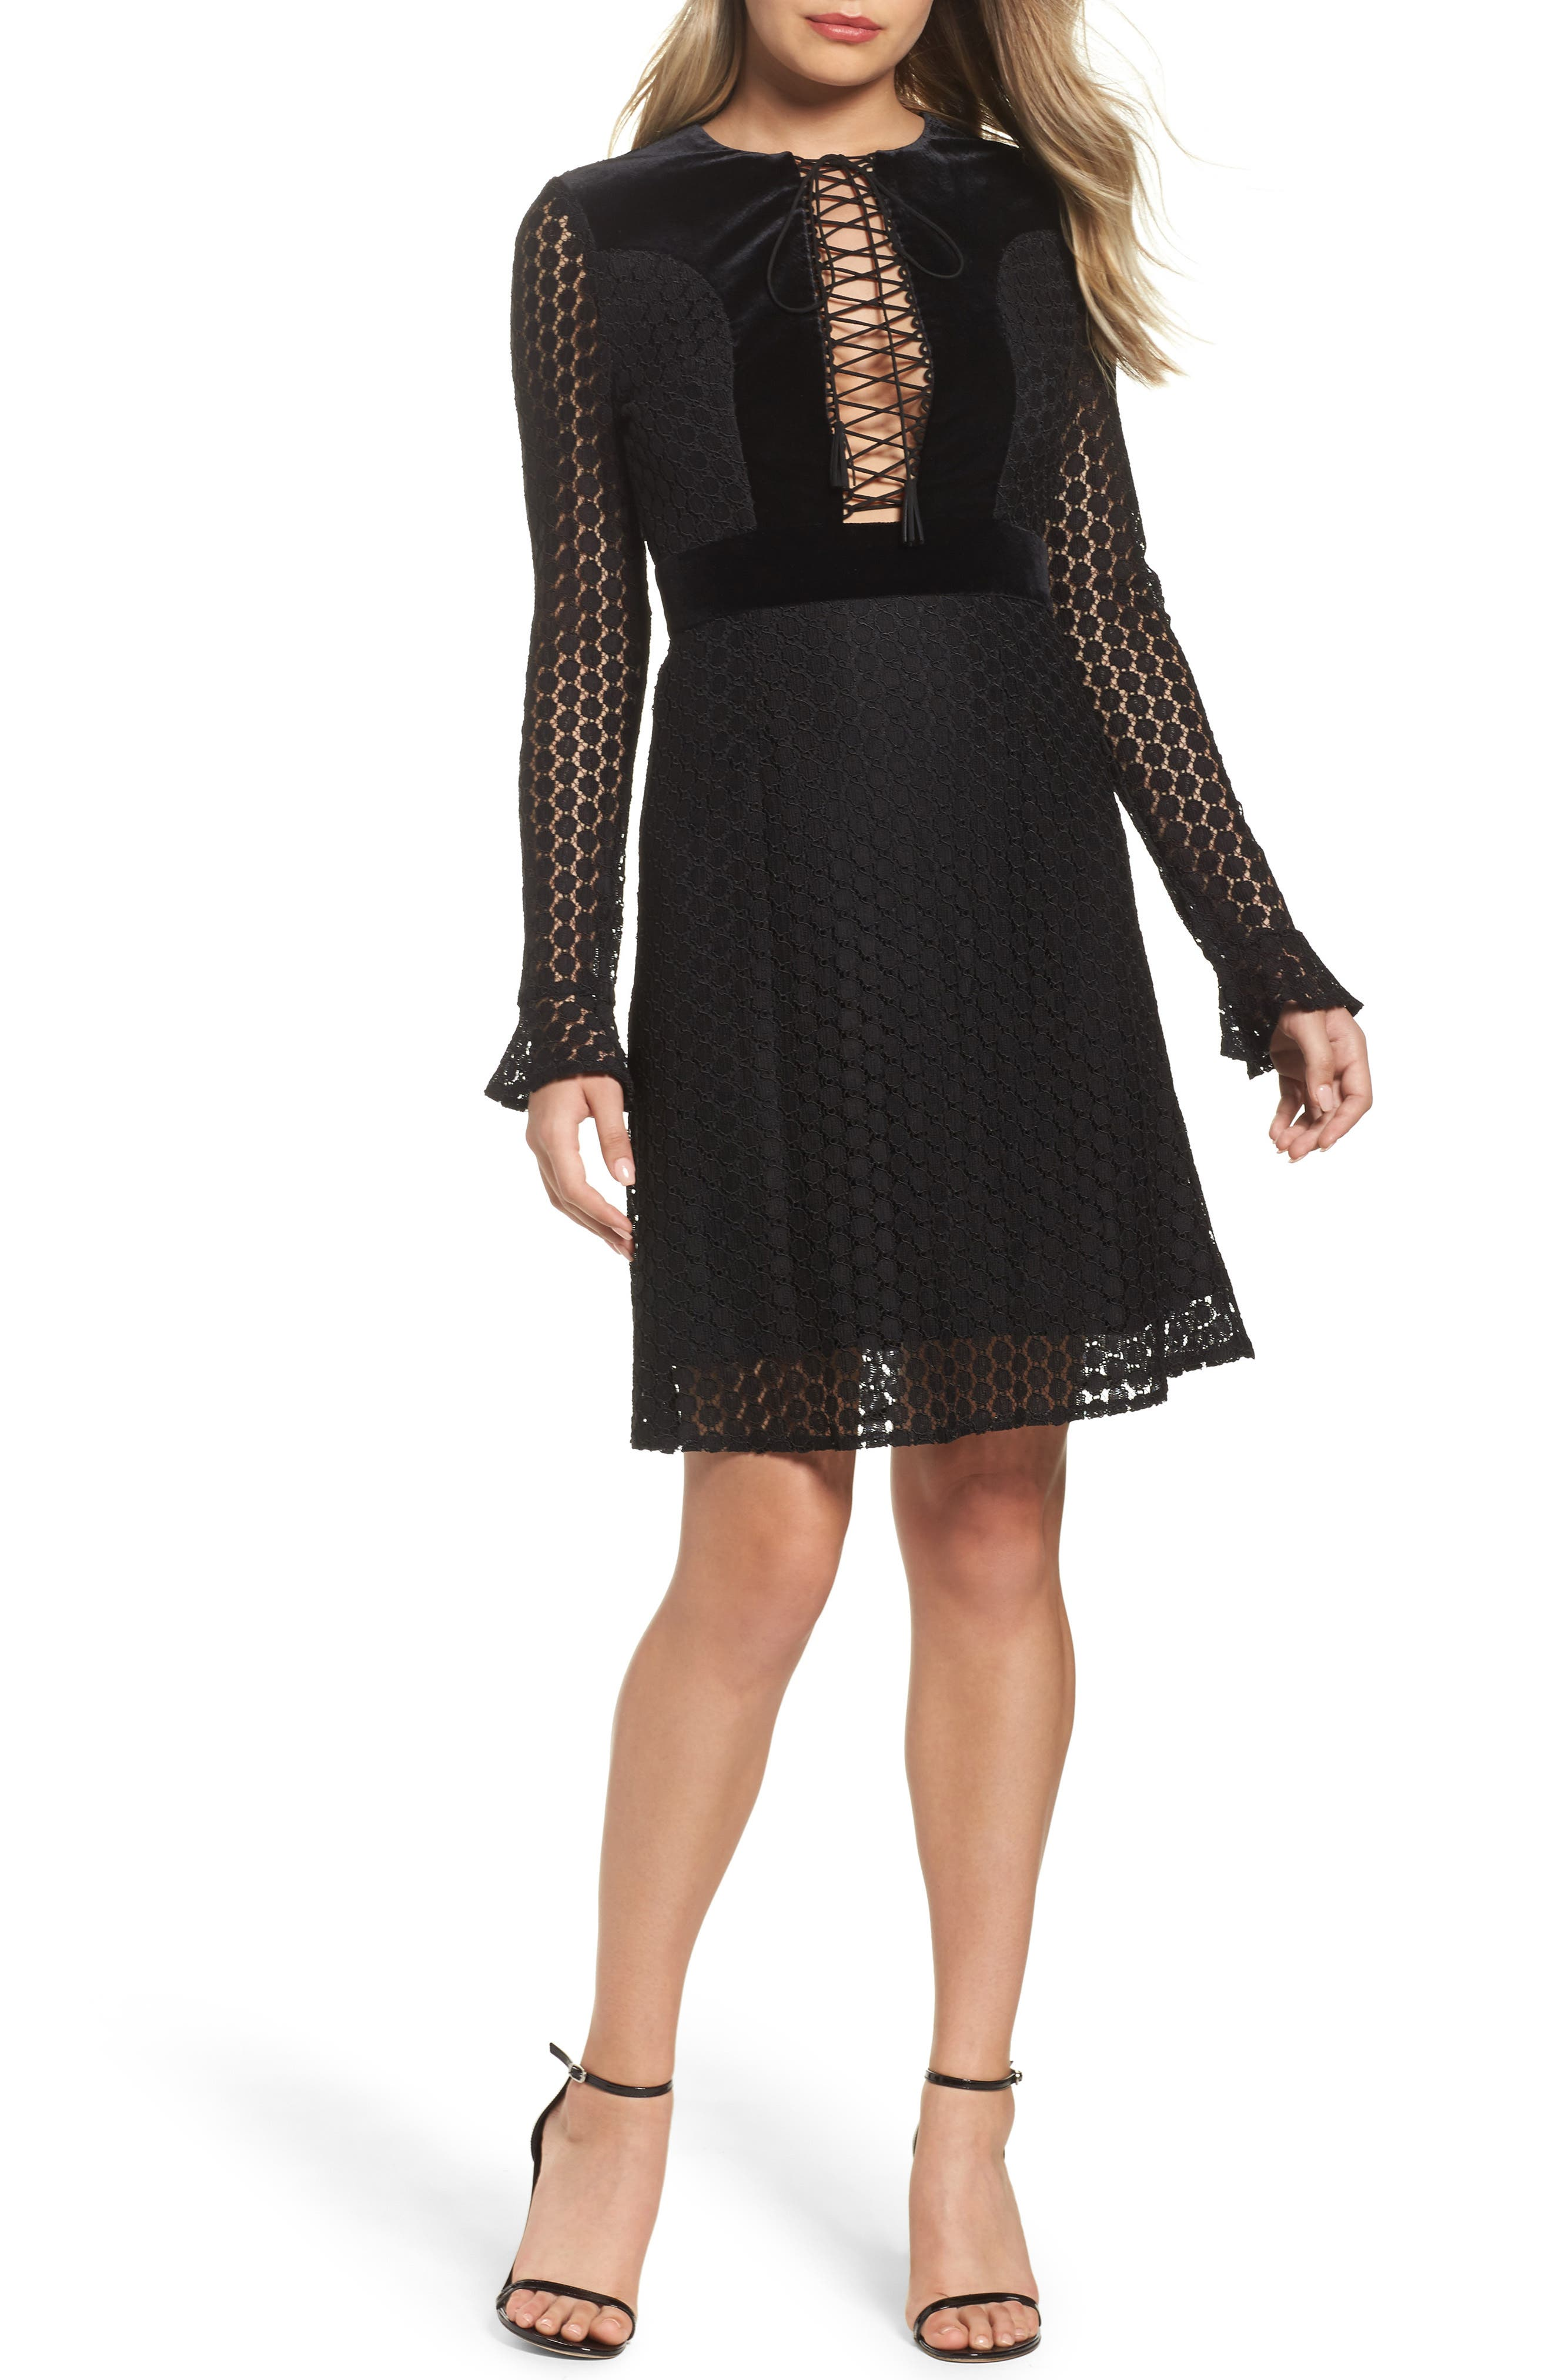 Alternate Image 1 Selected - Foxiedox Pearl Lace & Velvet Fit & Flare Dress